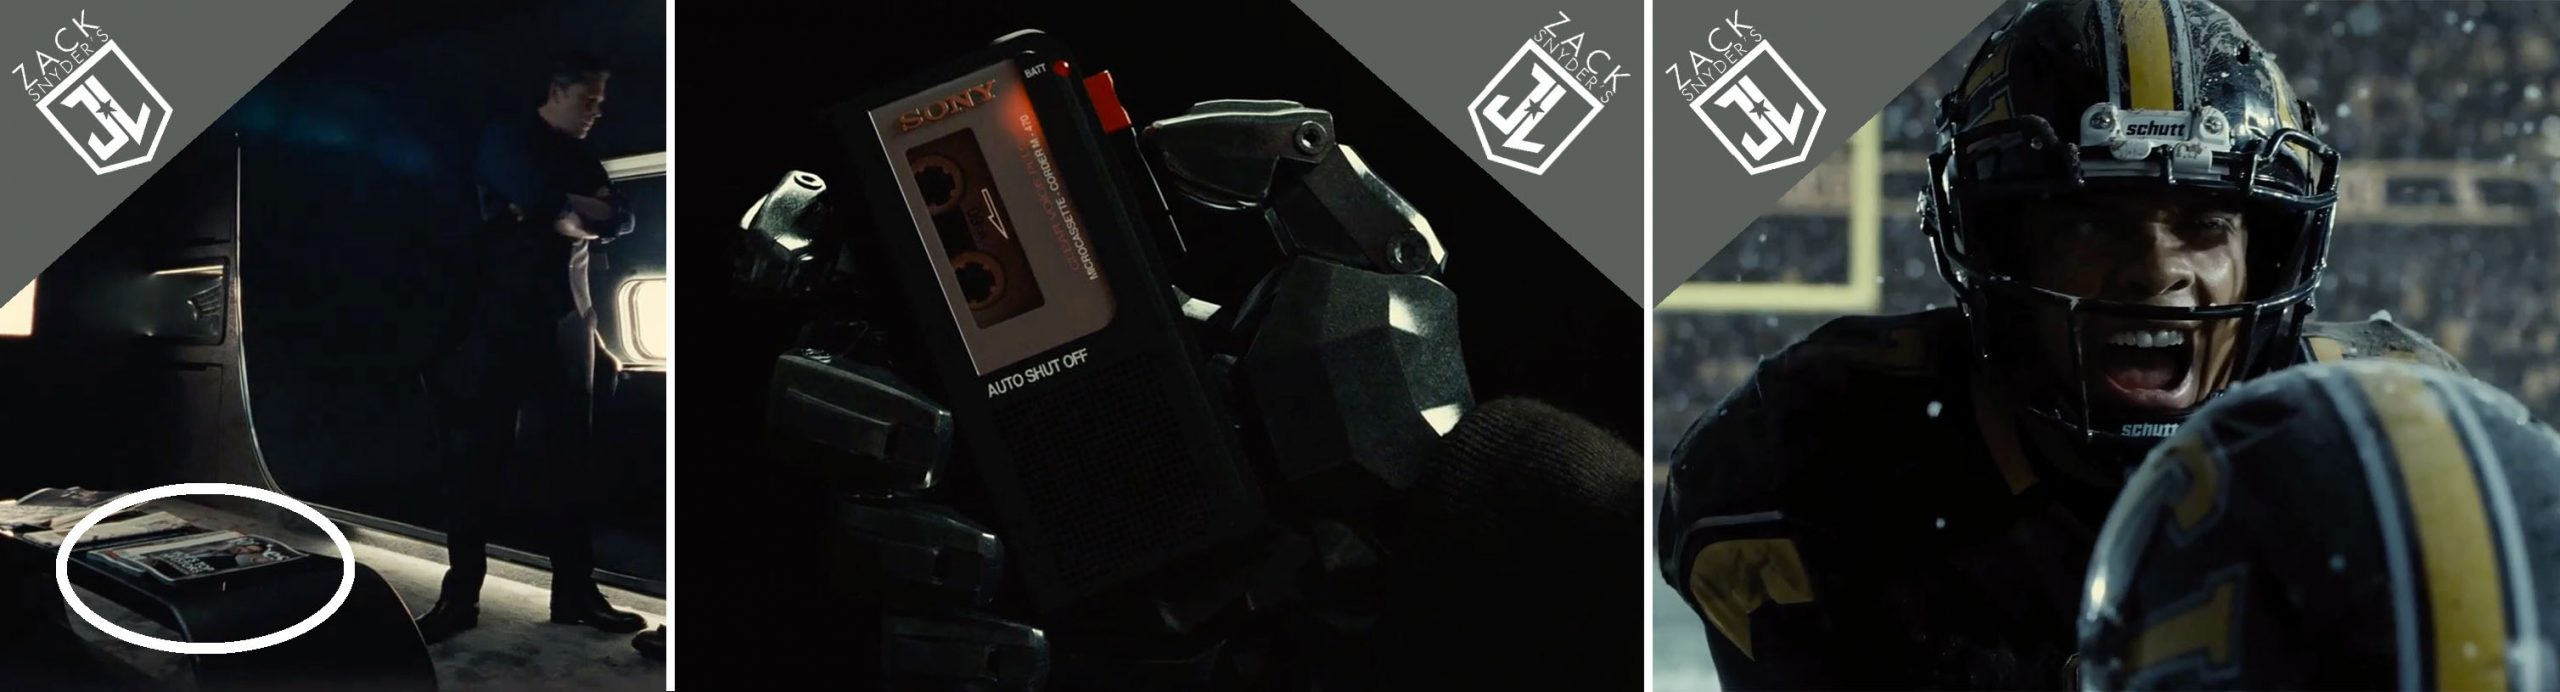 Fobres, Sony and Schutt product placements in Zack Snyder's Justice League